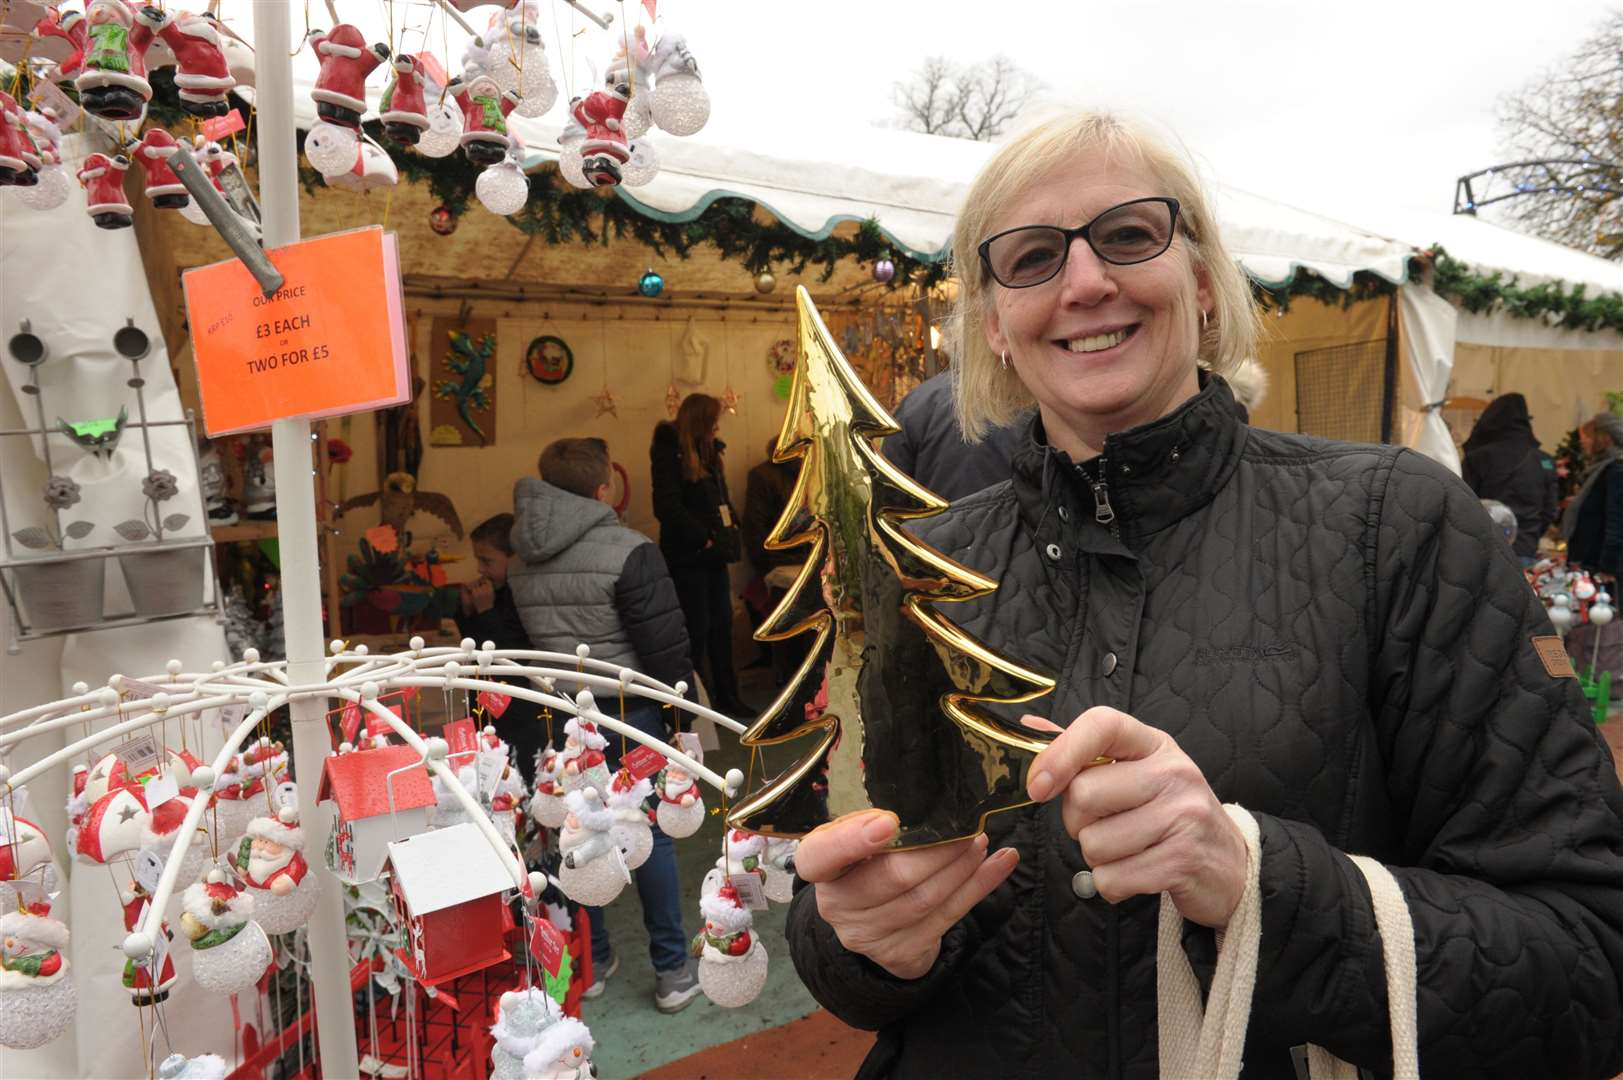 Rochester Castle Gardens will have a Christmas market and festive fairground